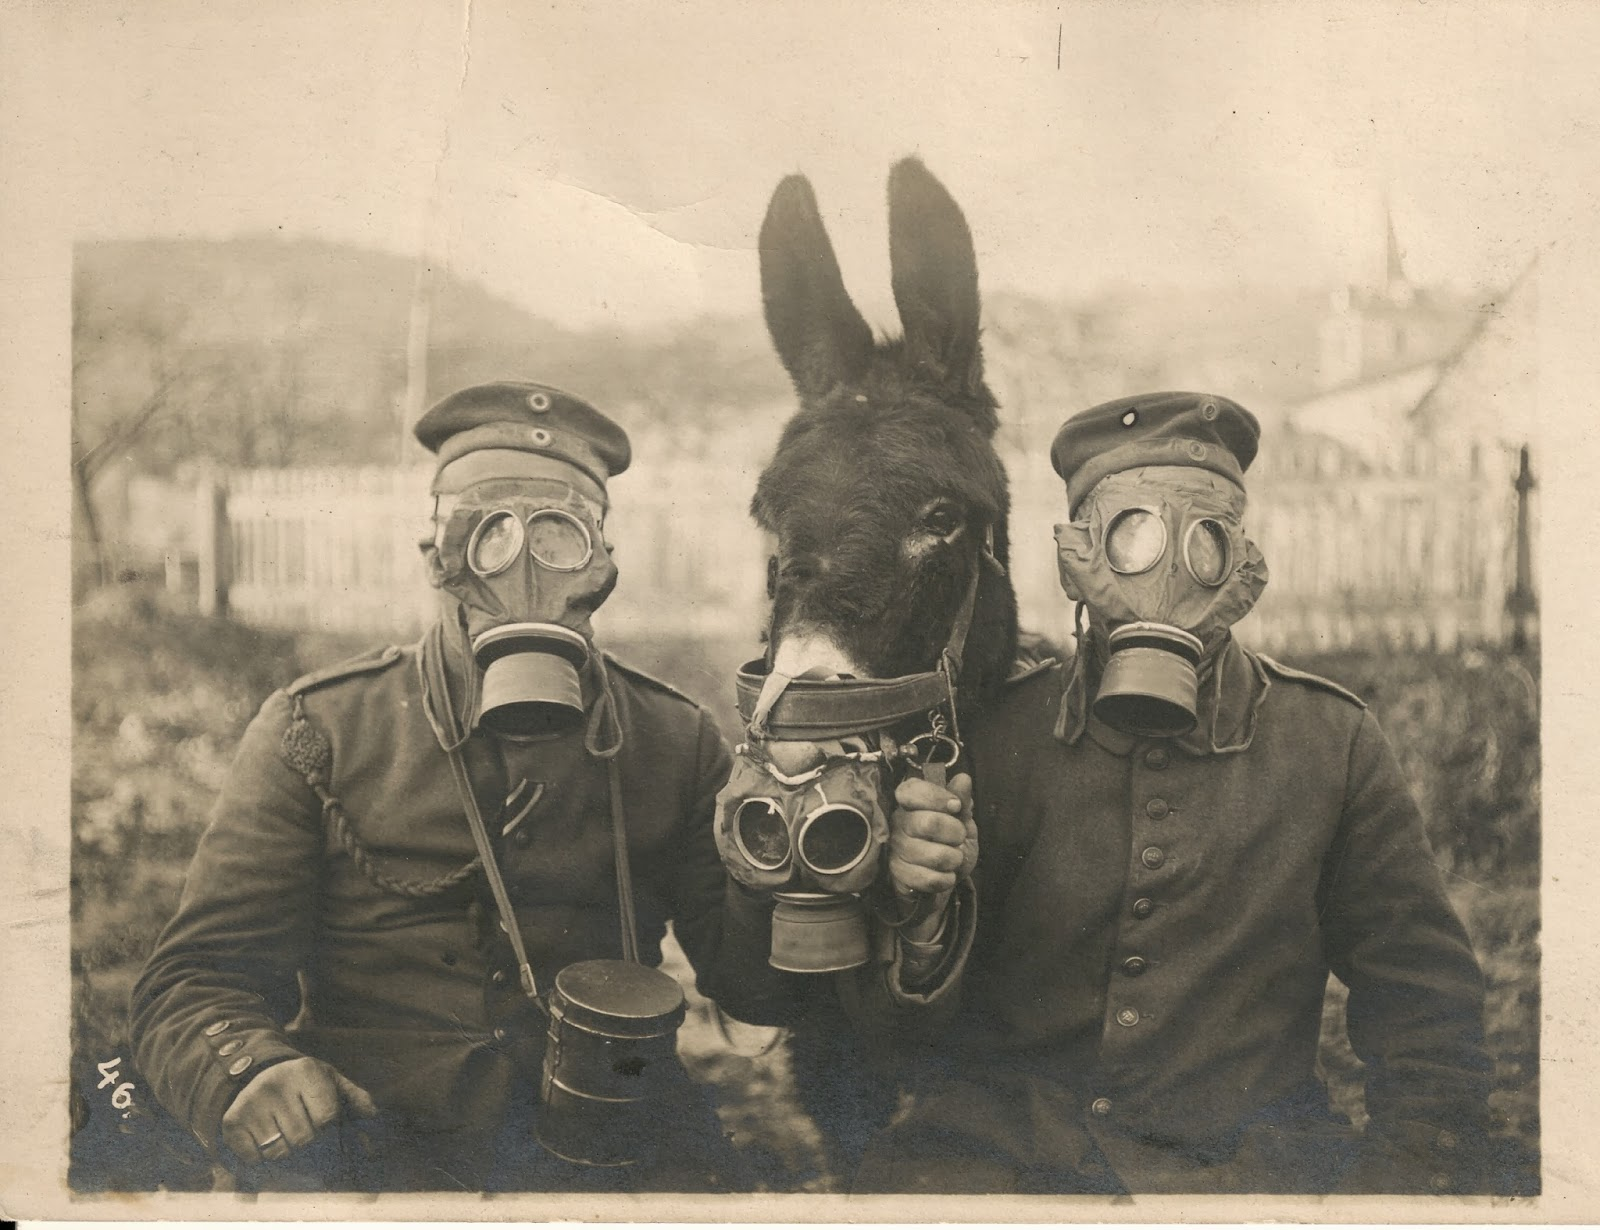 Two German soldiers and their mule wearing gas masks in WWI, 1916